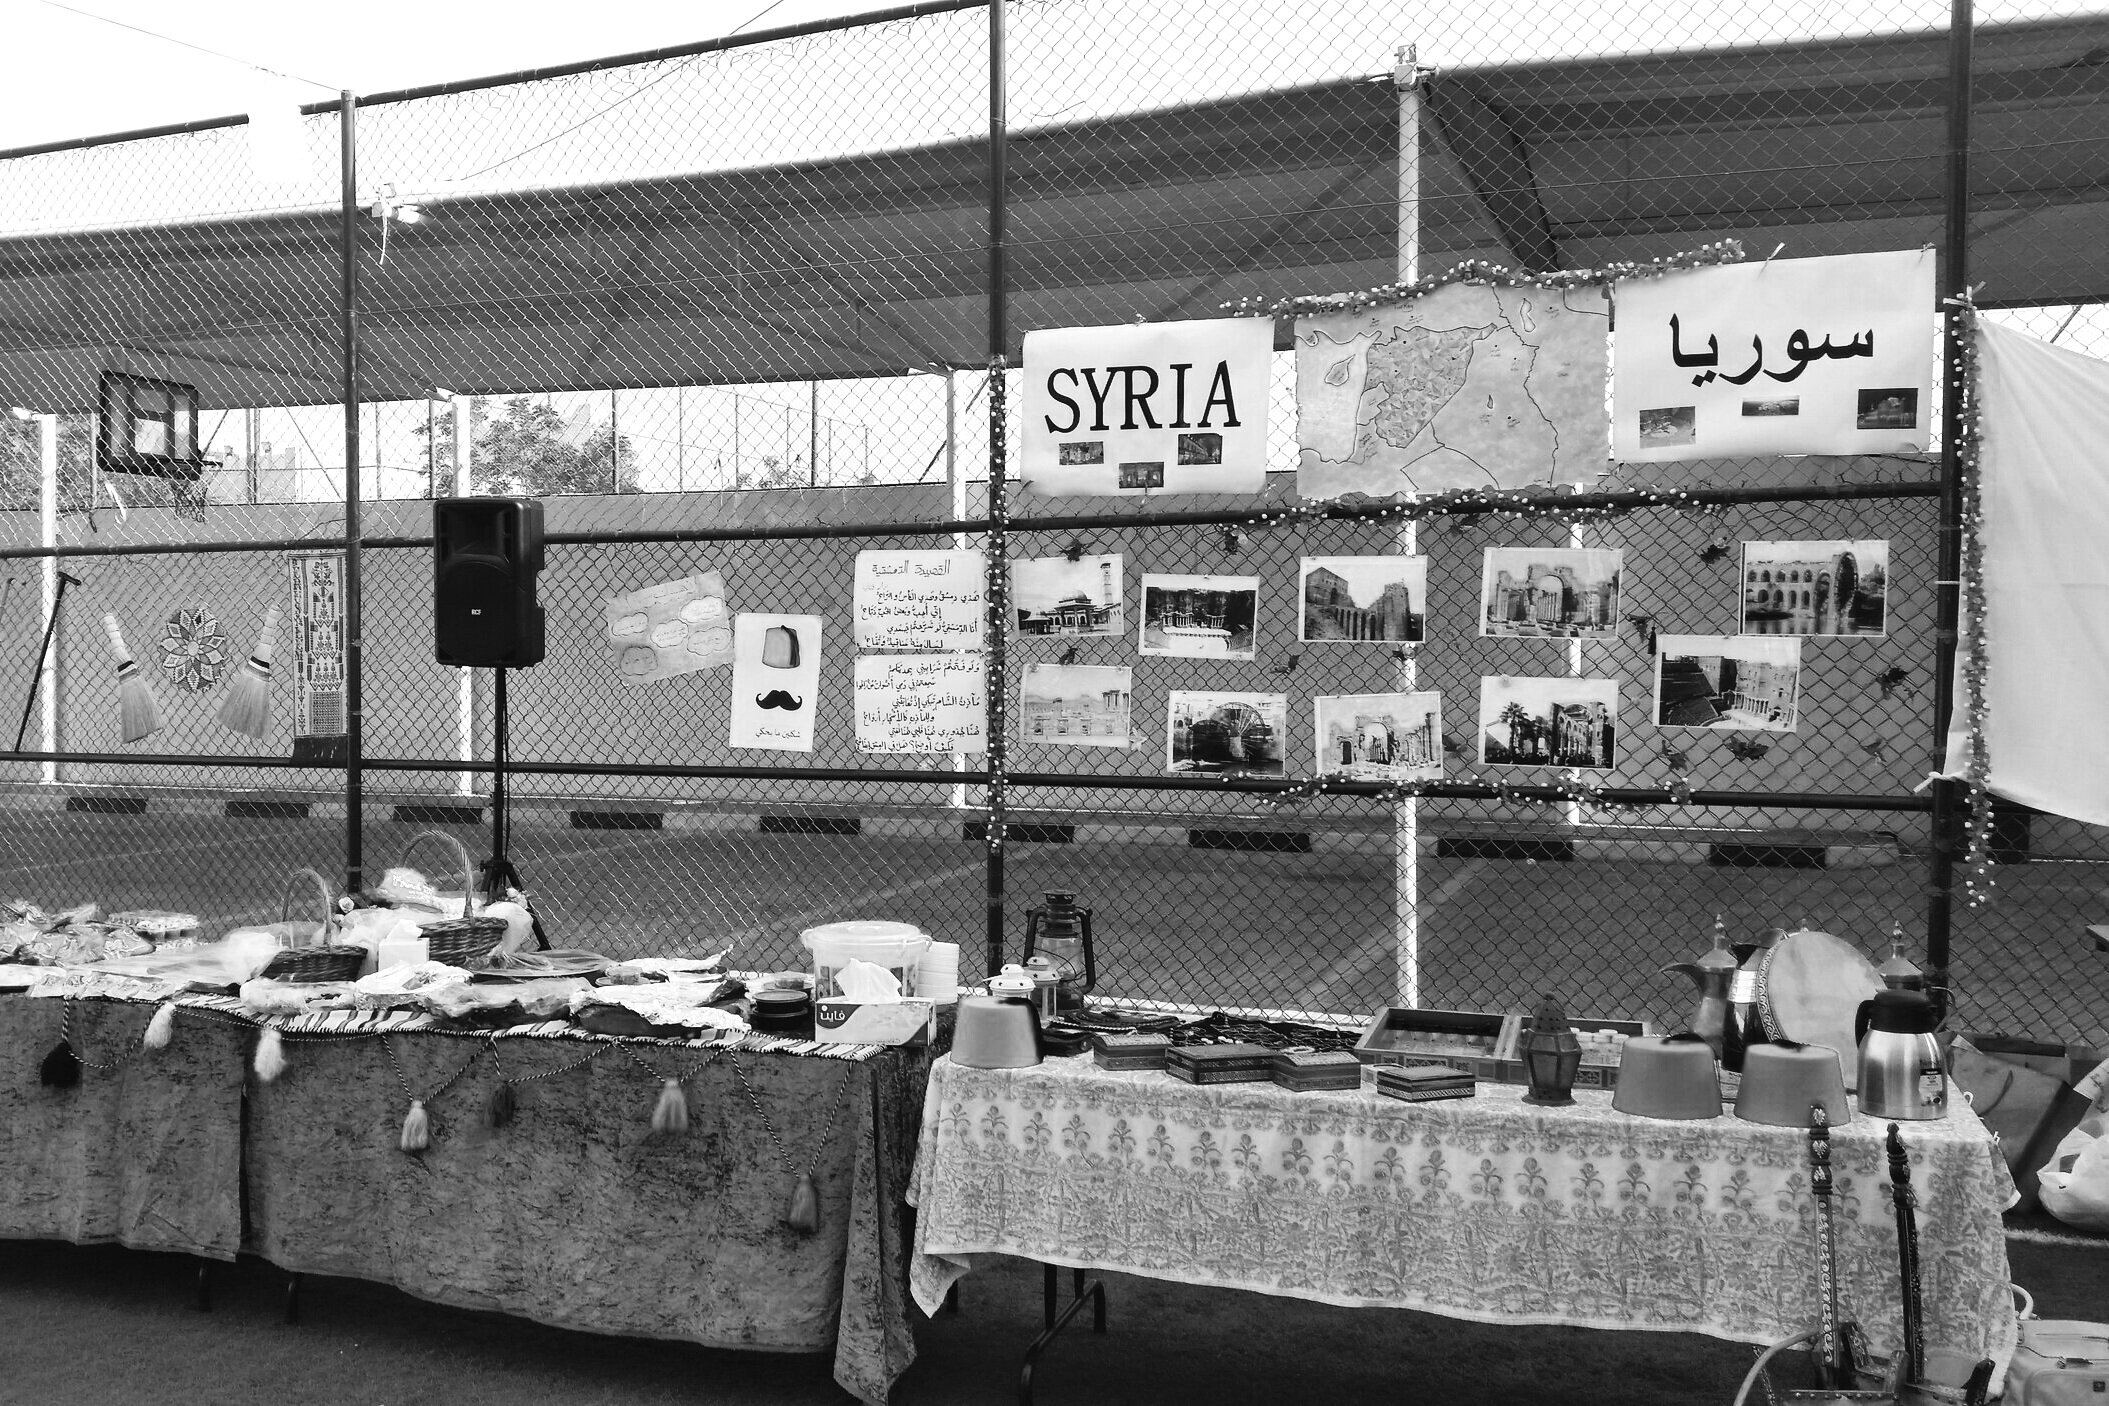 Like Oil and Water - Syrians living in the diaspora continue to feel divided by their home politics, that is, until there's food involvedBy Einas Alhamali ・ September 24, 2019 ・ 10 minutes